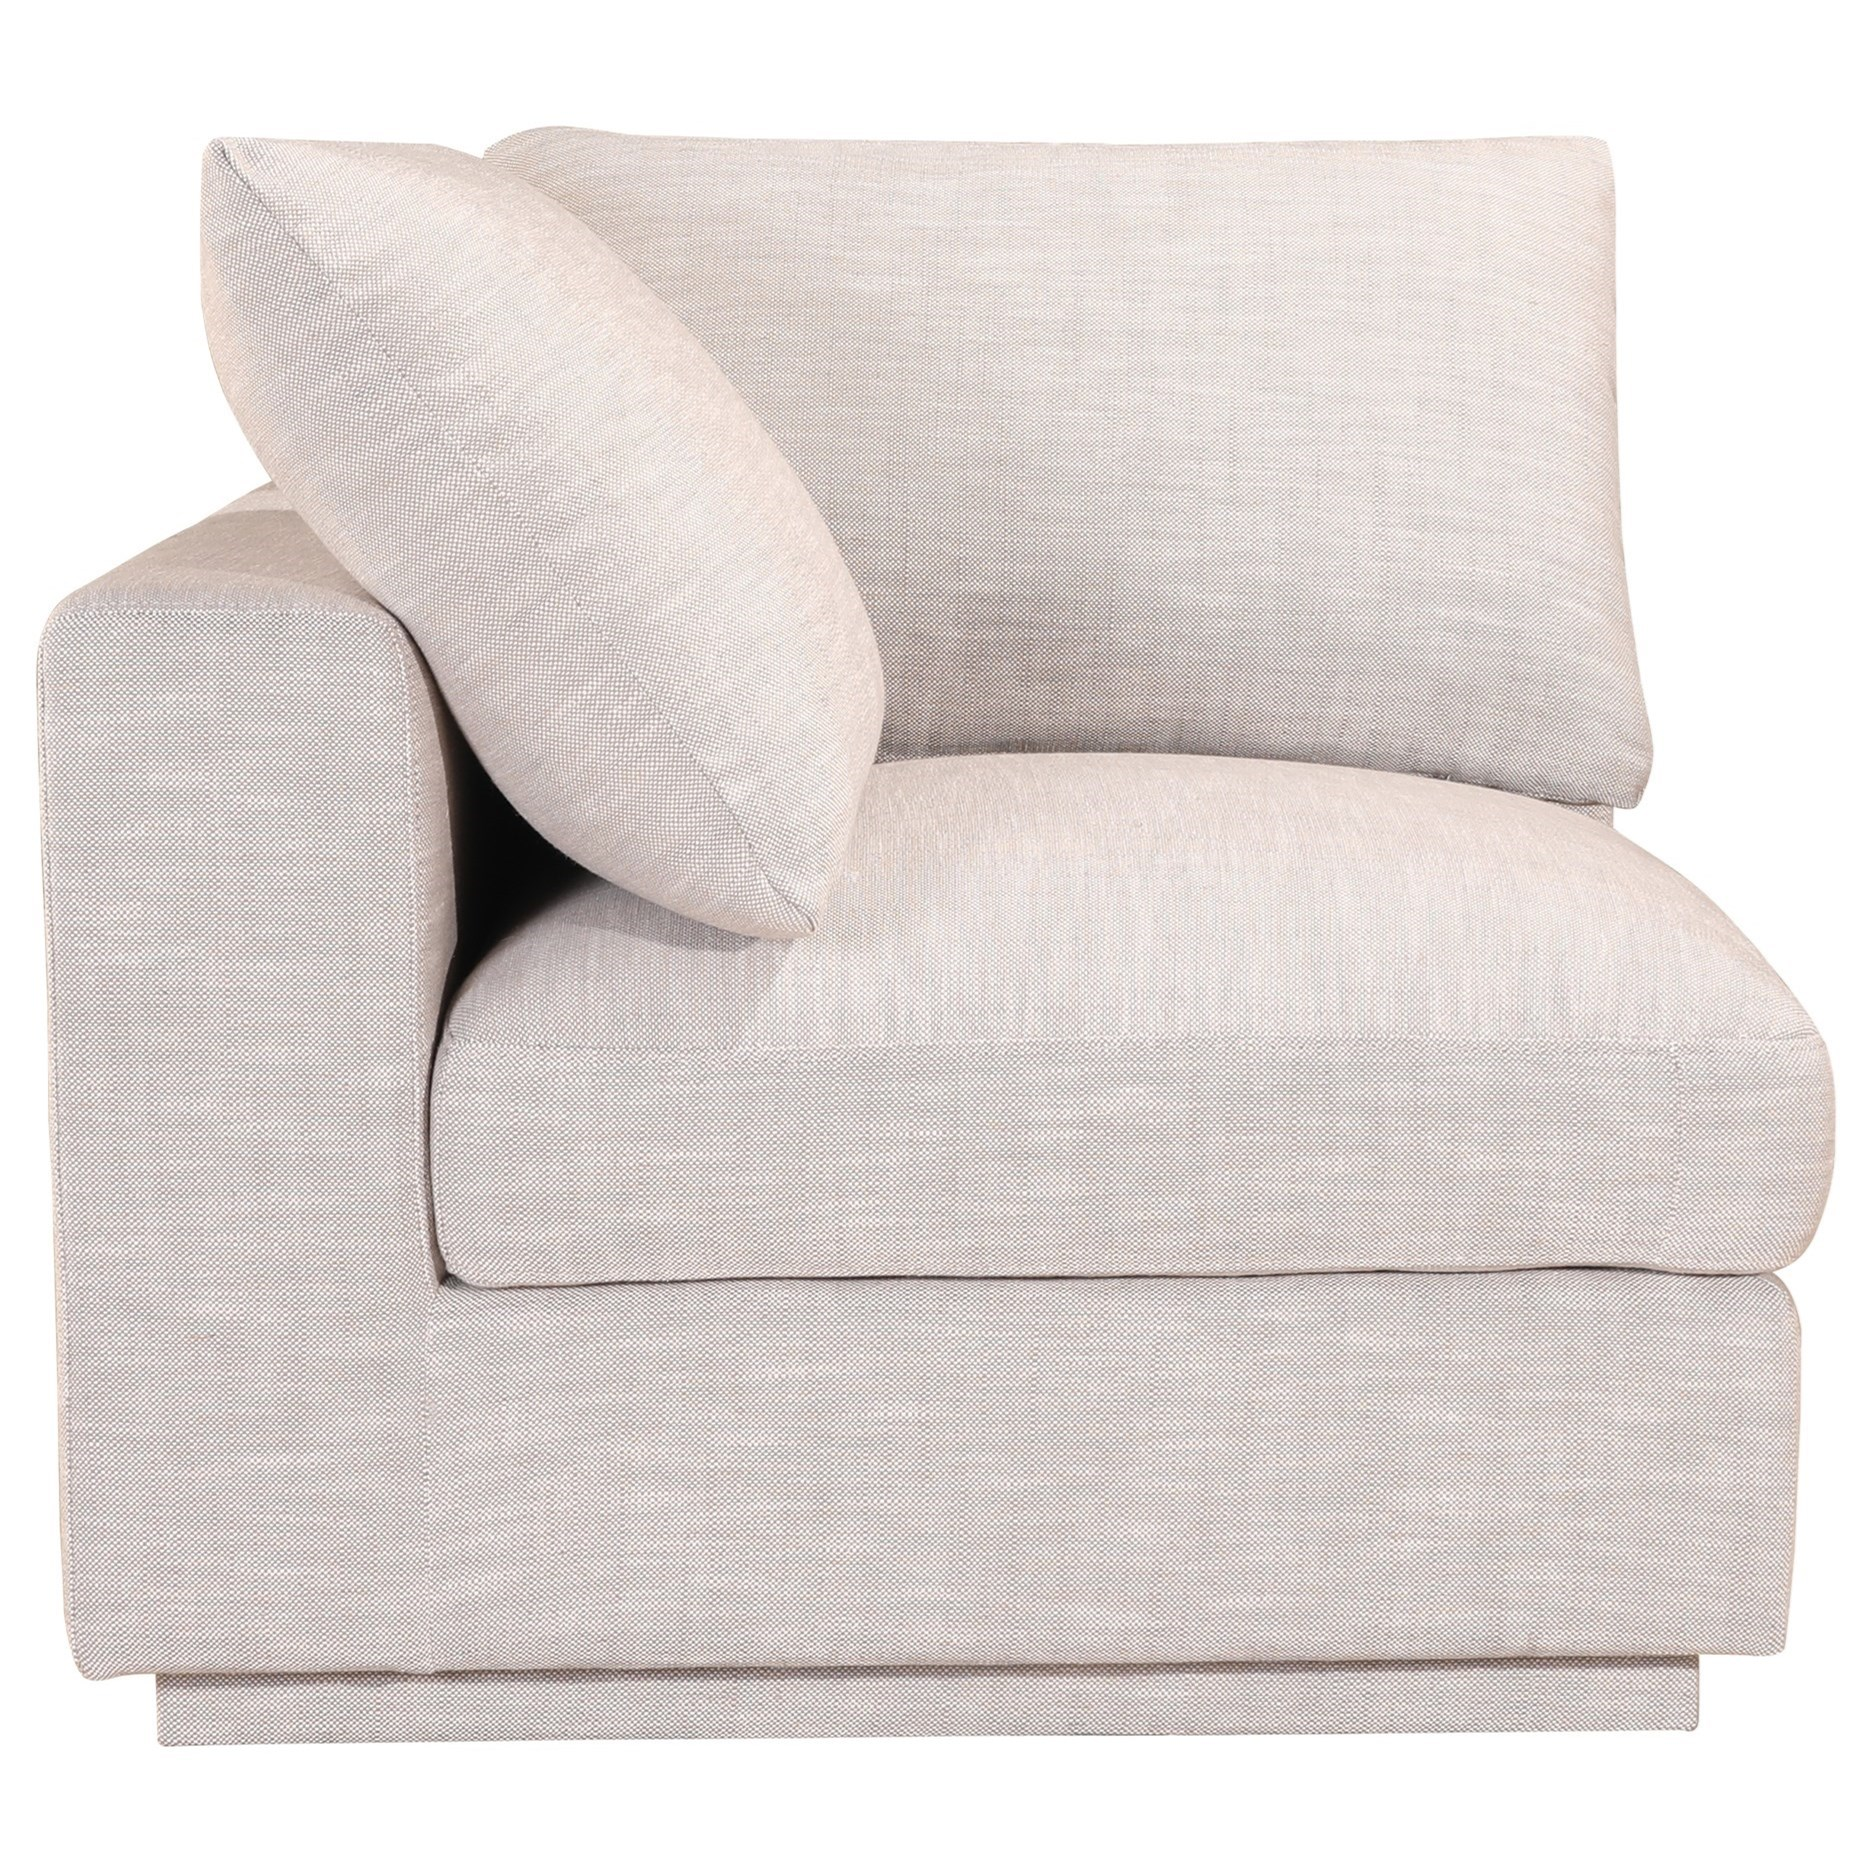 Justin Corner Chair by Moe's Home Collection at Fashion Furniture